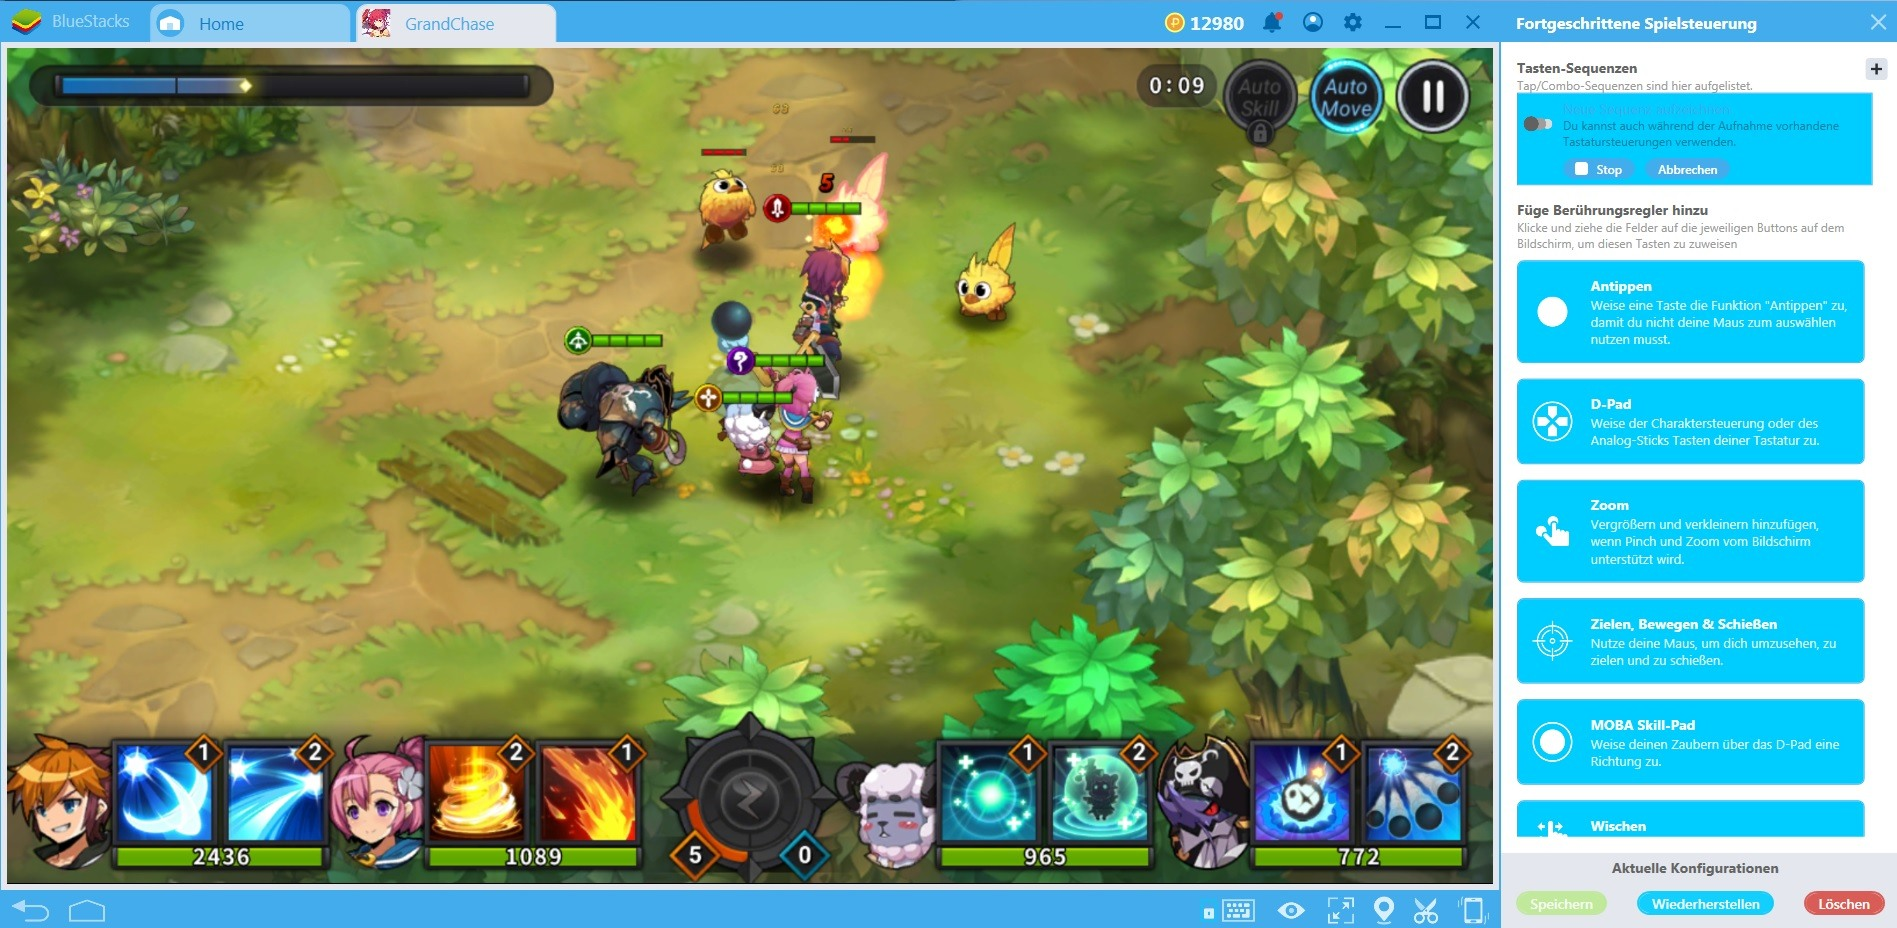 BlueStacks Tipps: Gib dein Bestes in Elyos